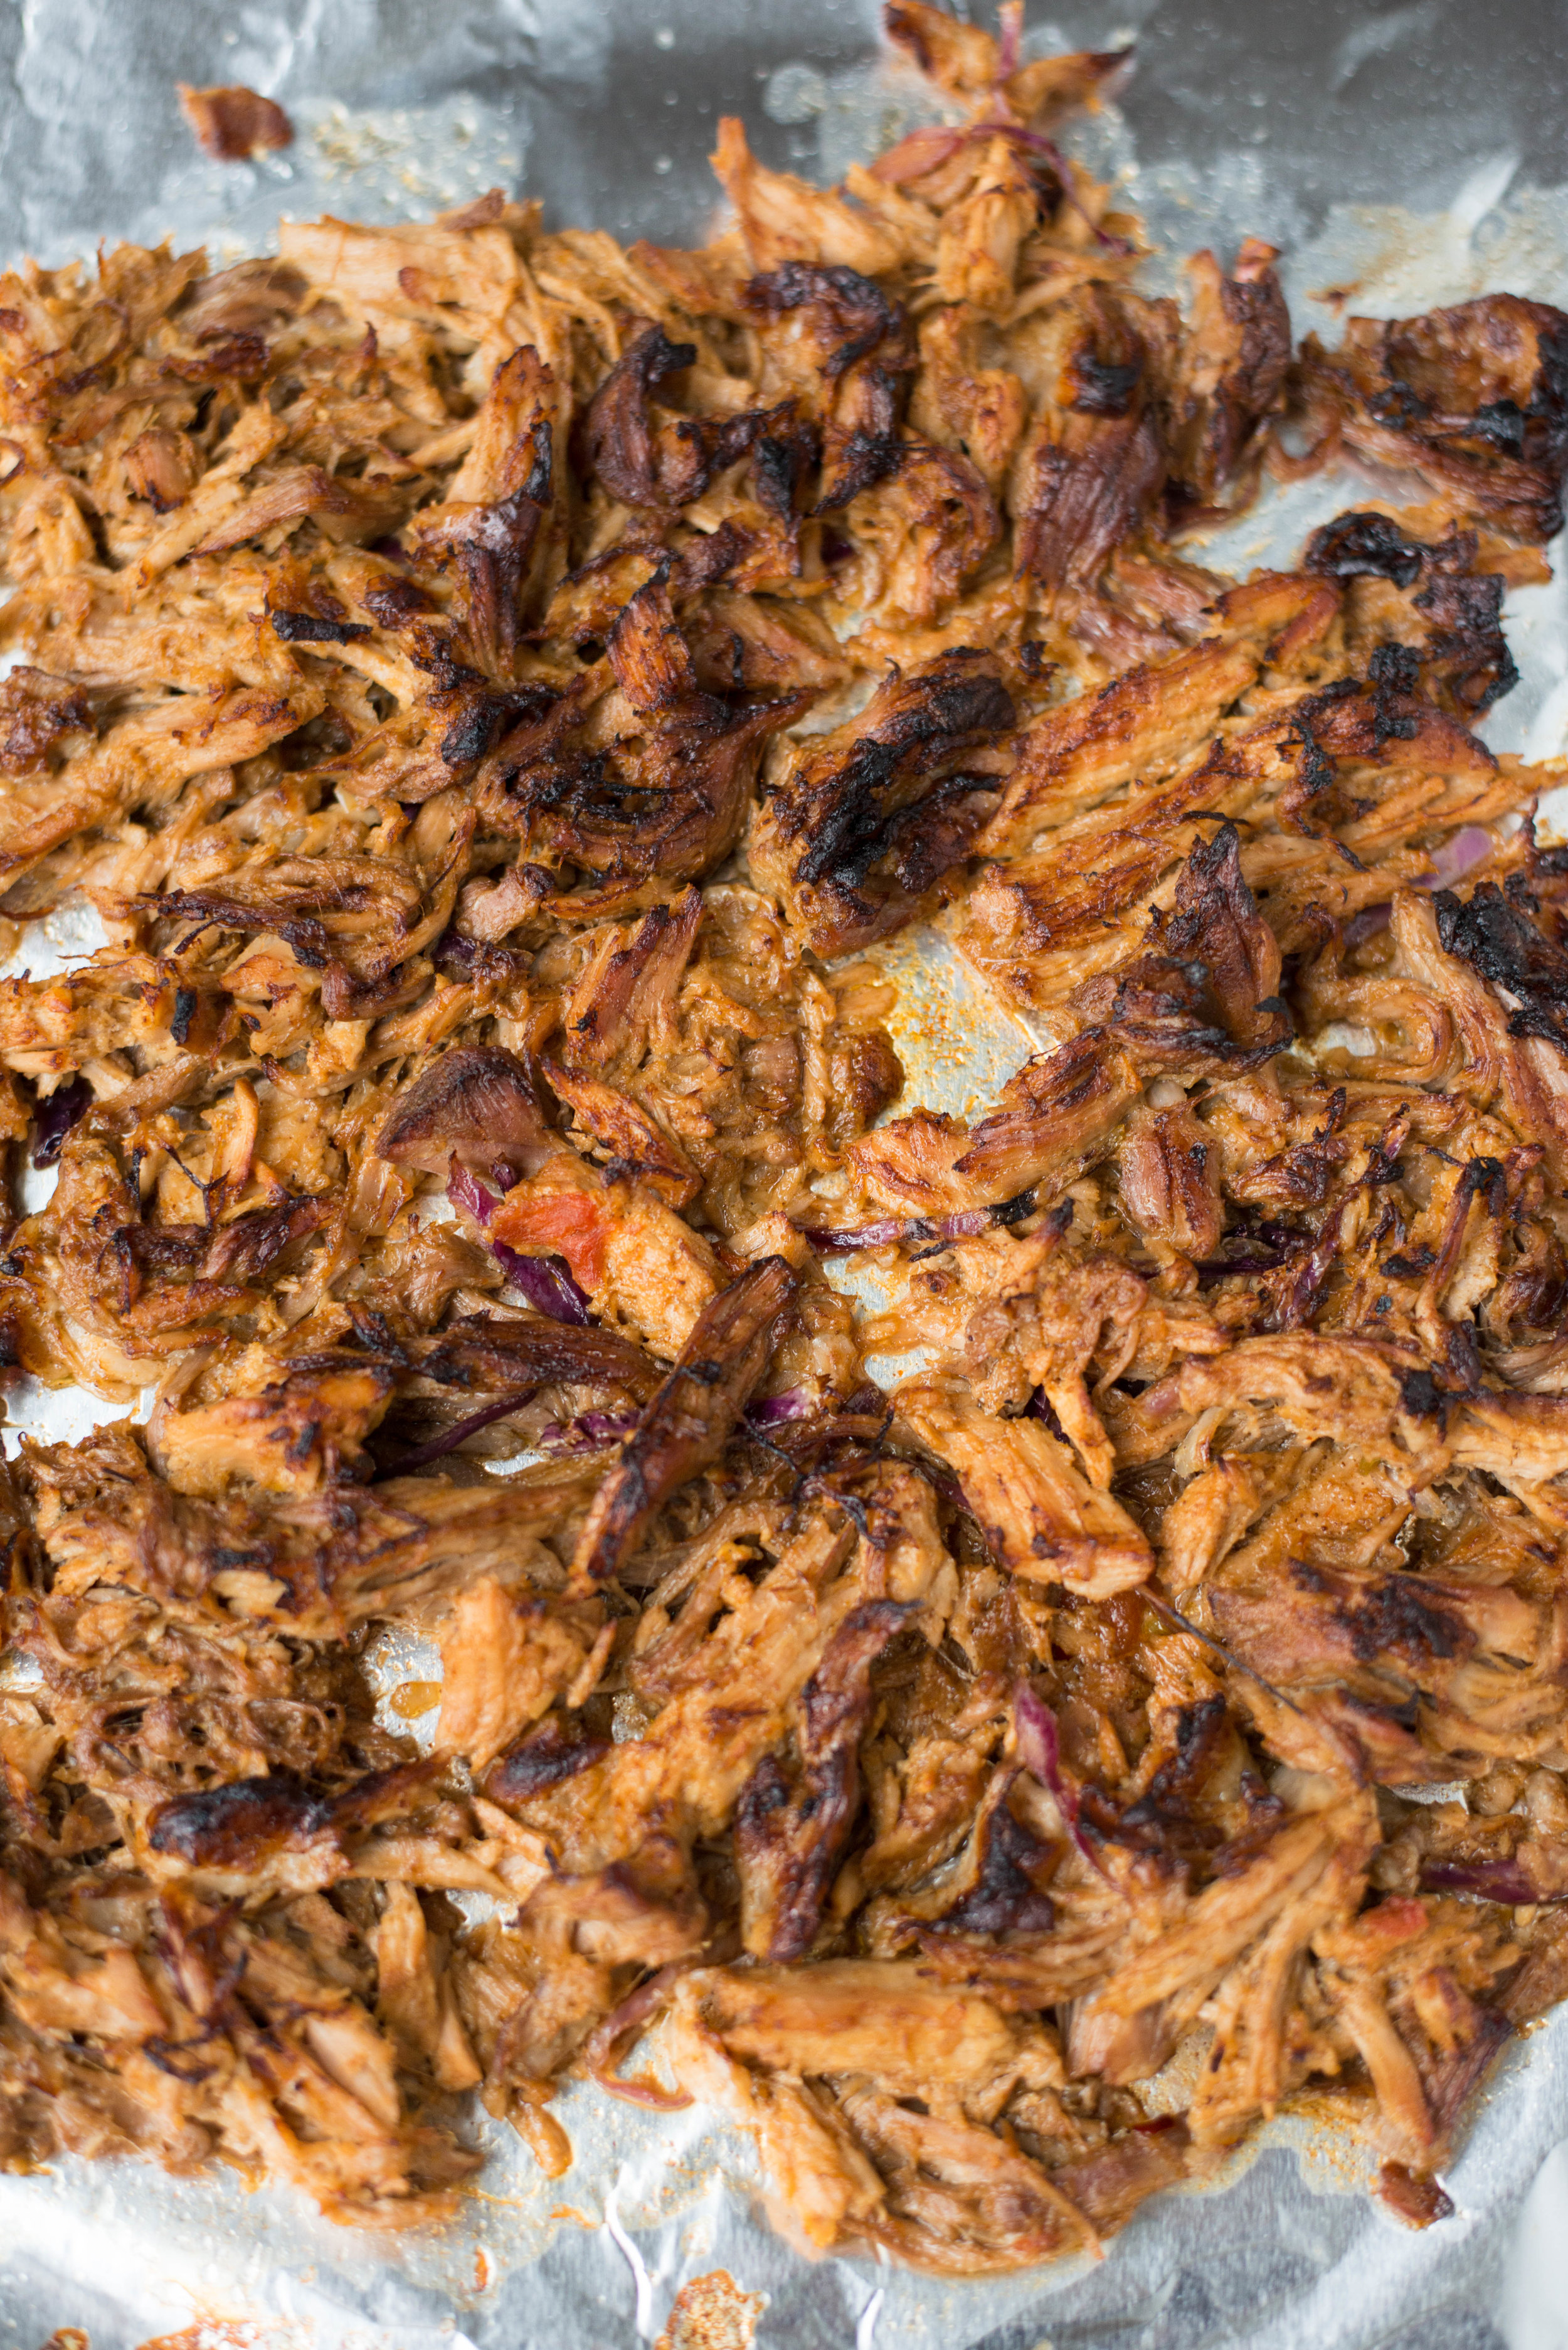 Simple to prepare with easy-to-find ingredients, 6-Ingredient Slow Cooker Carnitas takes just minutes to prep, and the results areinsanely delicious. #realfoodwholelife #healthycooking #slowcooker #crockpot #easyrecipes #recipe #carnitas  #dairyfree #glutenfree #whole30 #paleo #soyfree #tacos